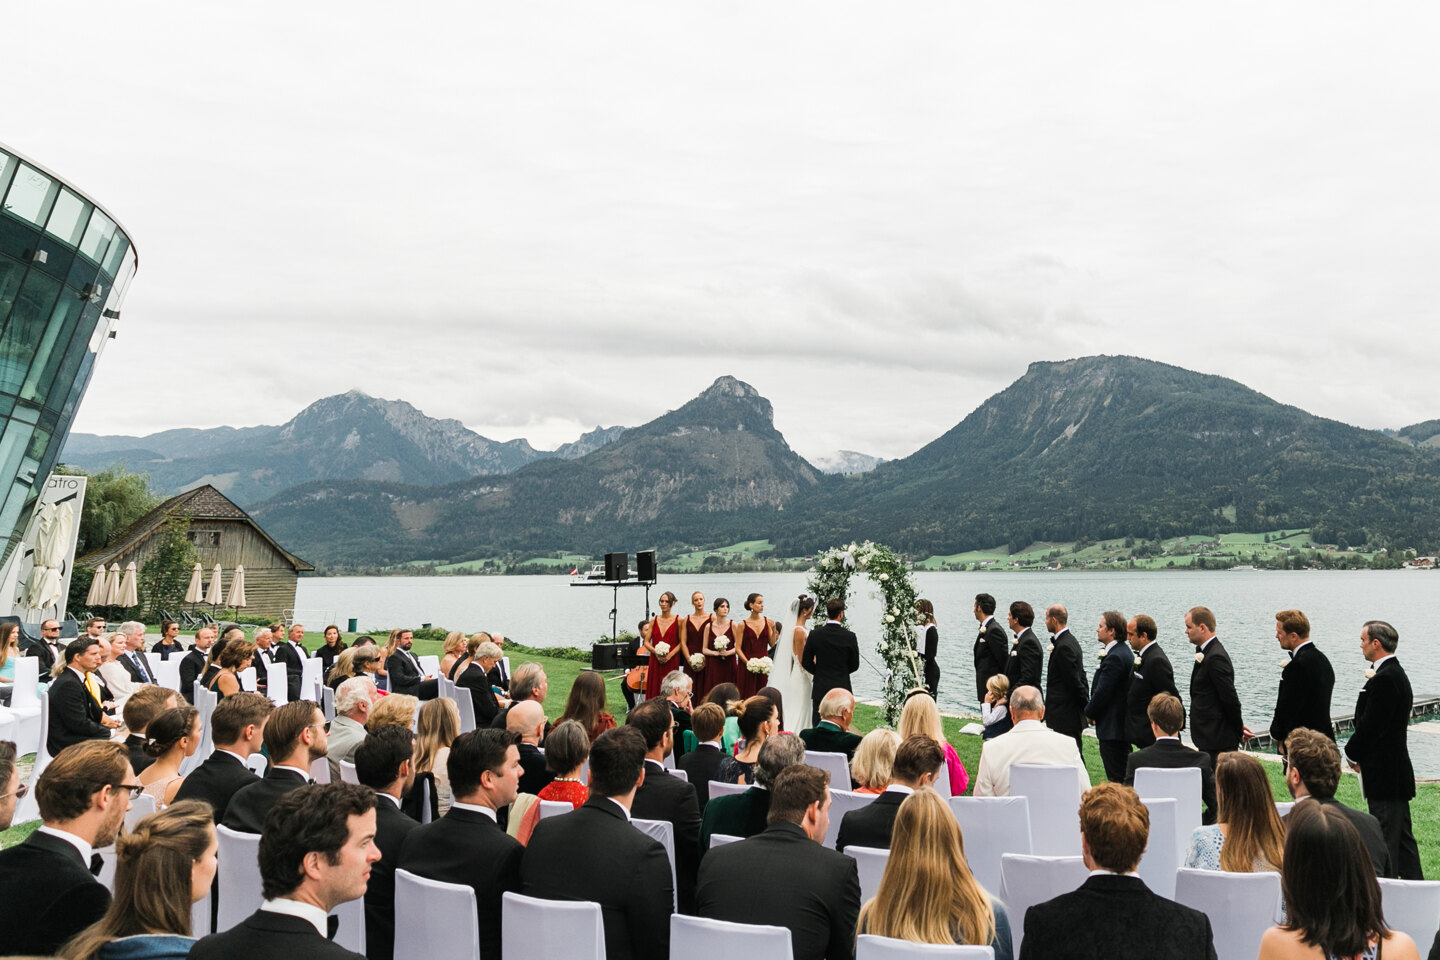 Wedding Photographer in Milan: Wedding ceremony at a luxurious estate overlooking a mountain lake and mountains